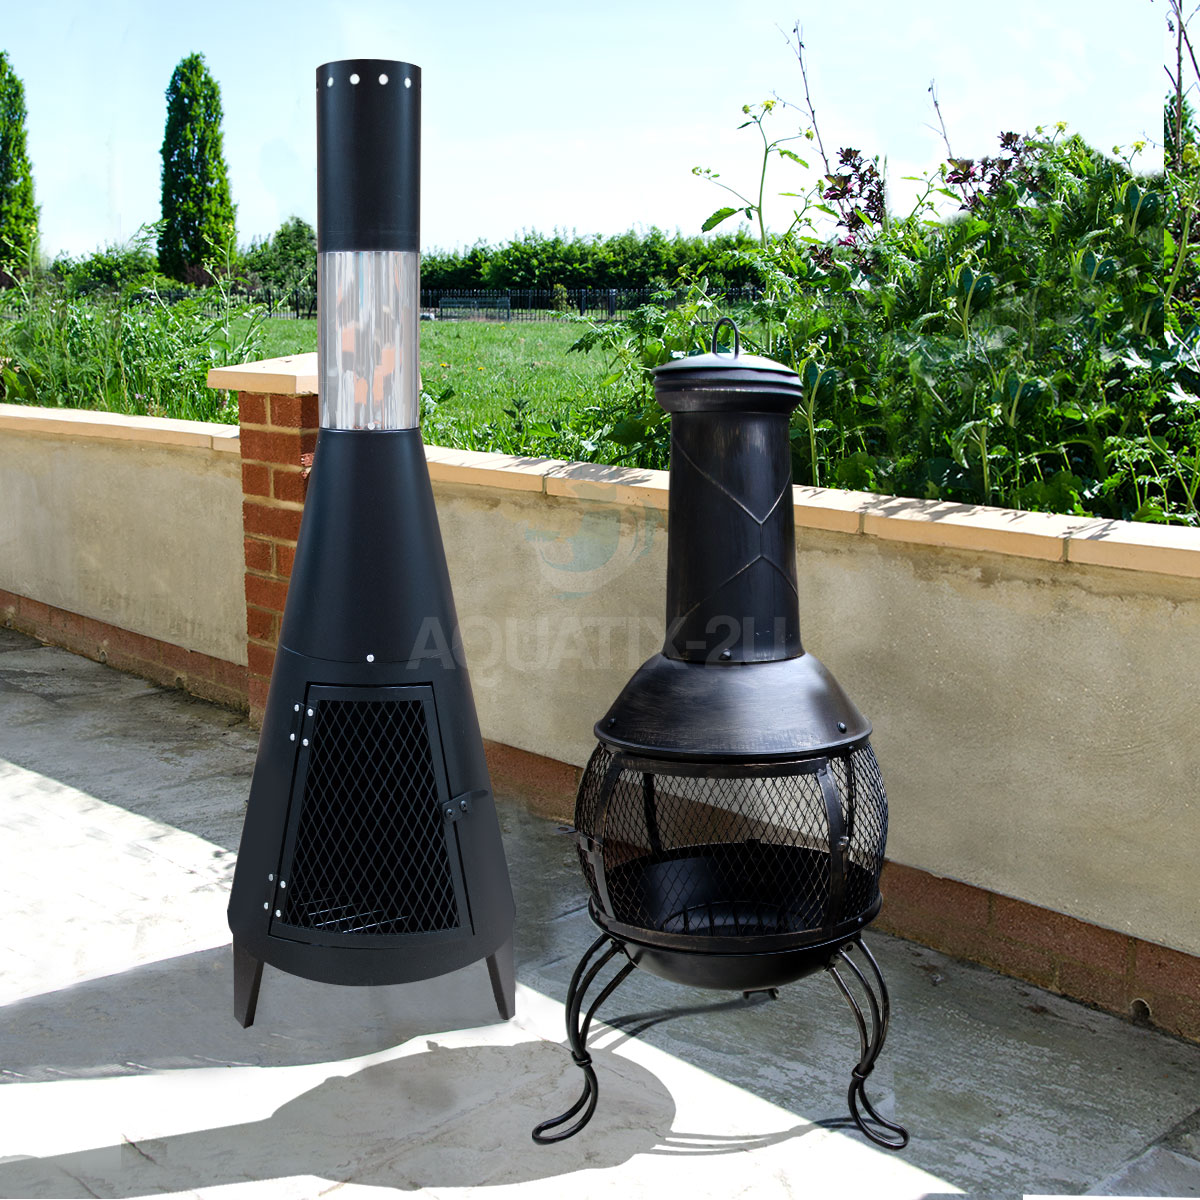 chiminea barbecuing  outdoor heating  ebay - outdoor chiminea garden patio log burner wood fire heater with chimney